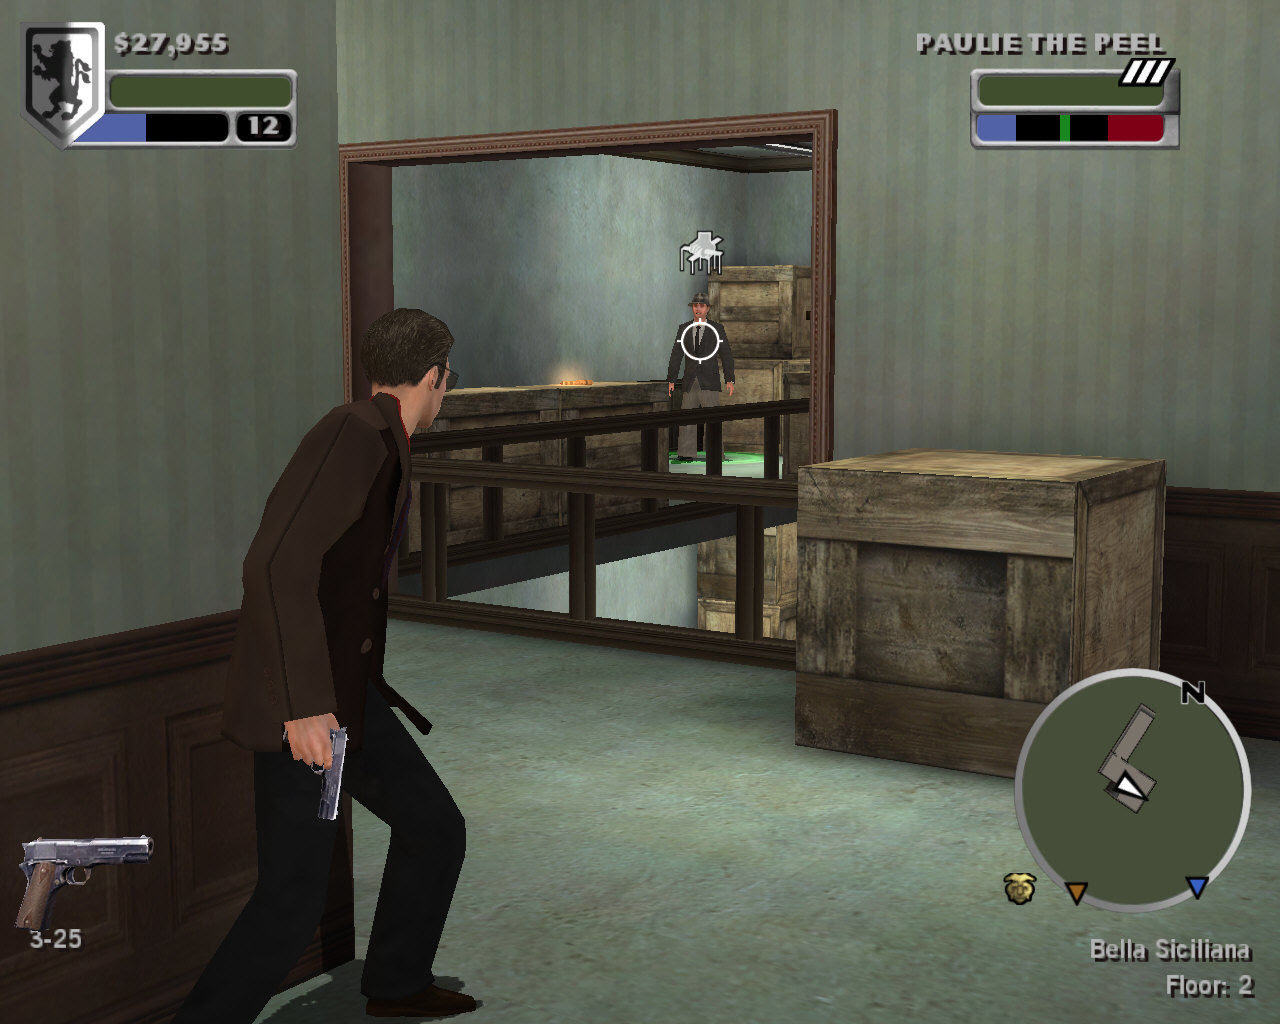 http://www.mobygames.com/images/shots/l/230281-the-godfather-the-game-windows-screenshot-sneaking-around.jpg